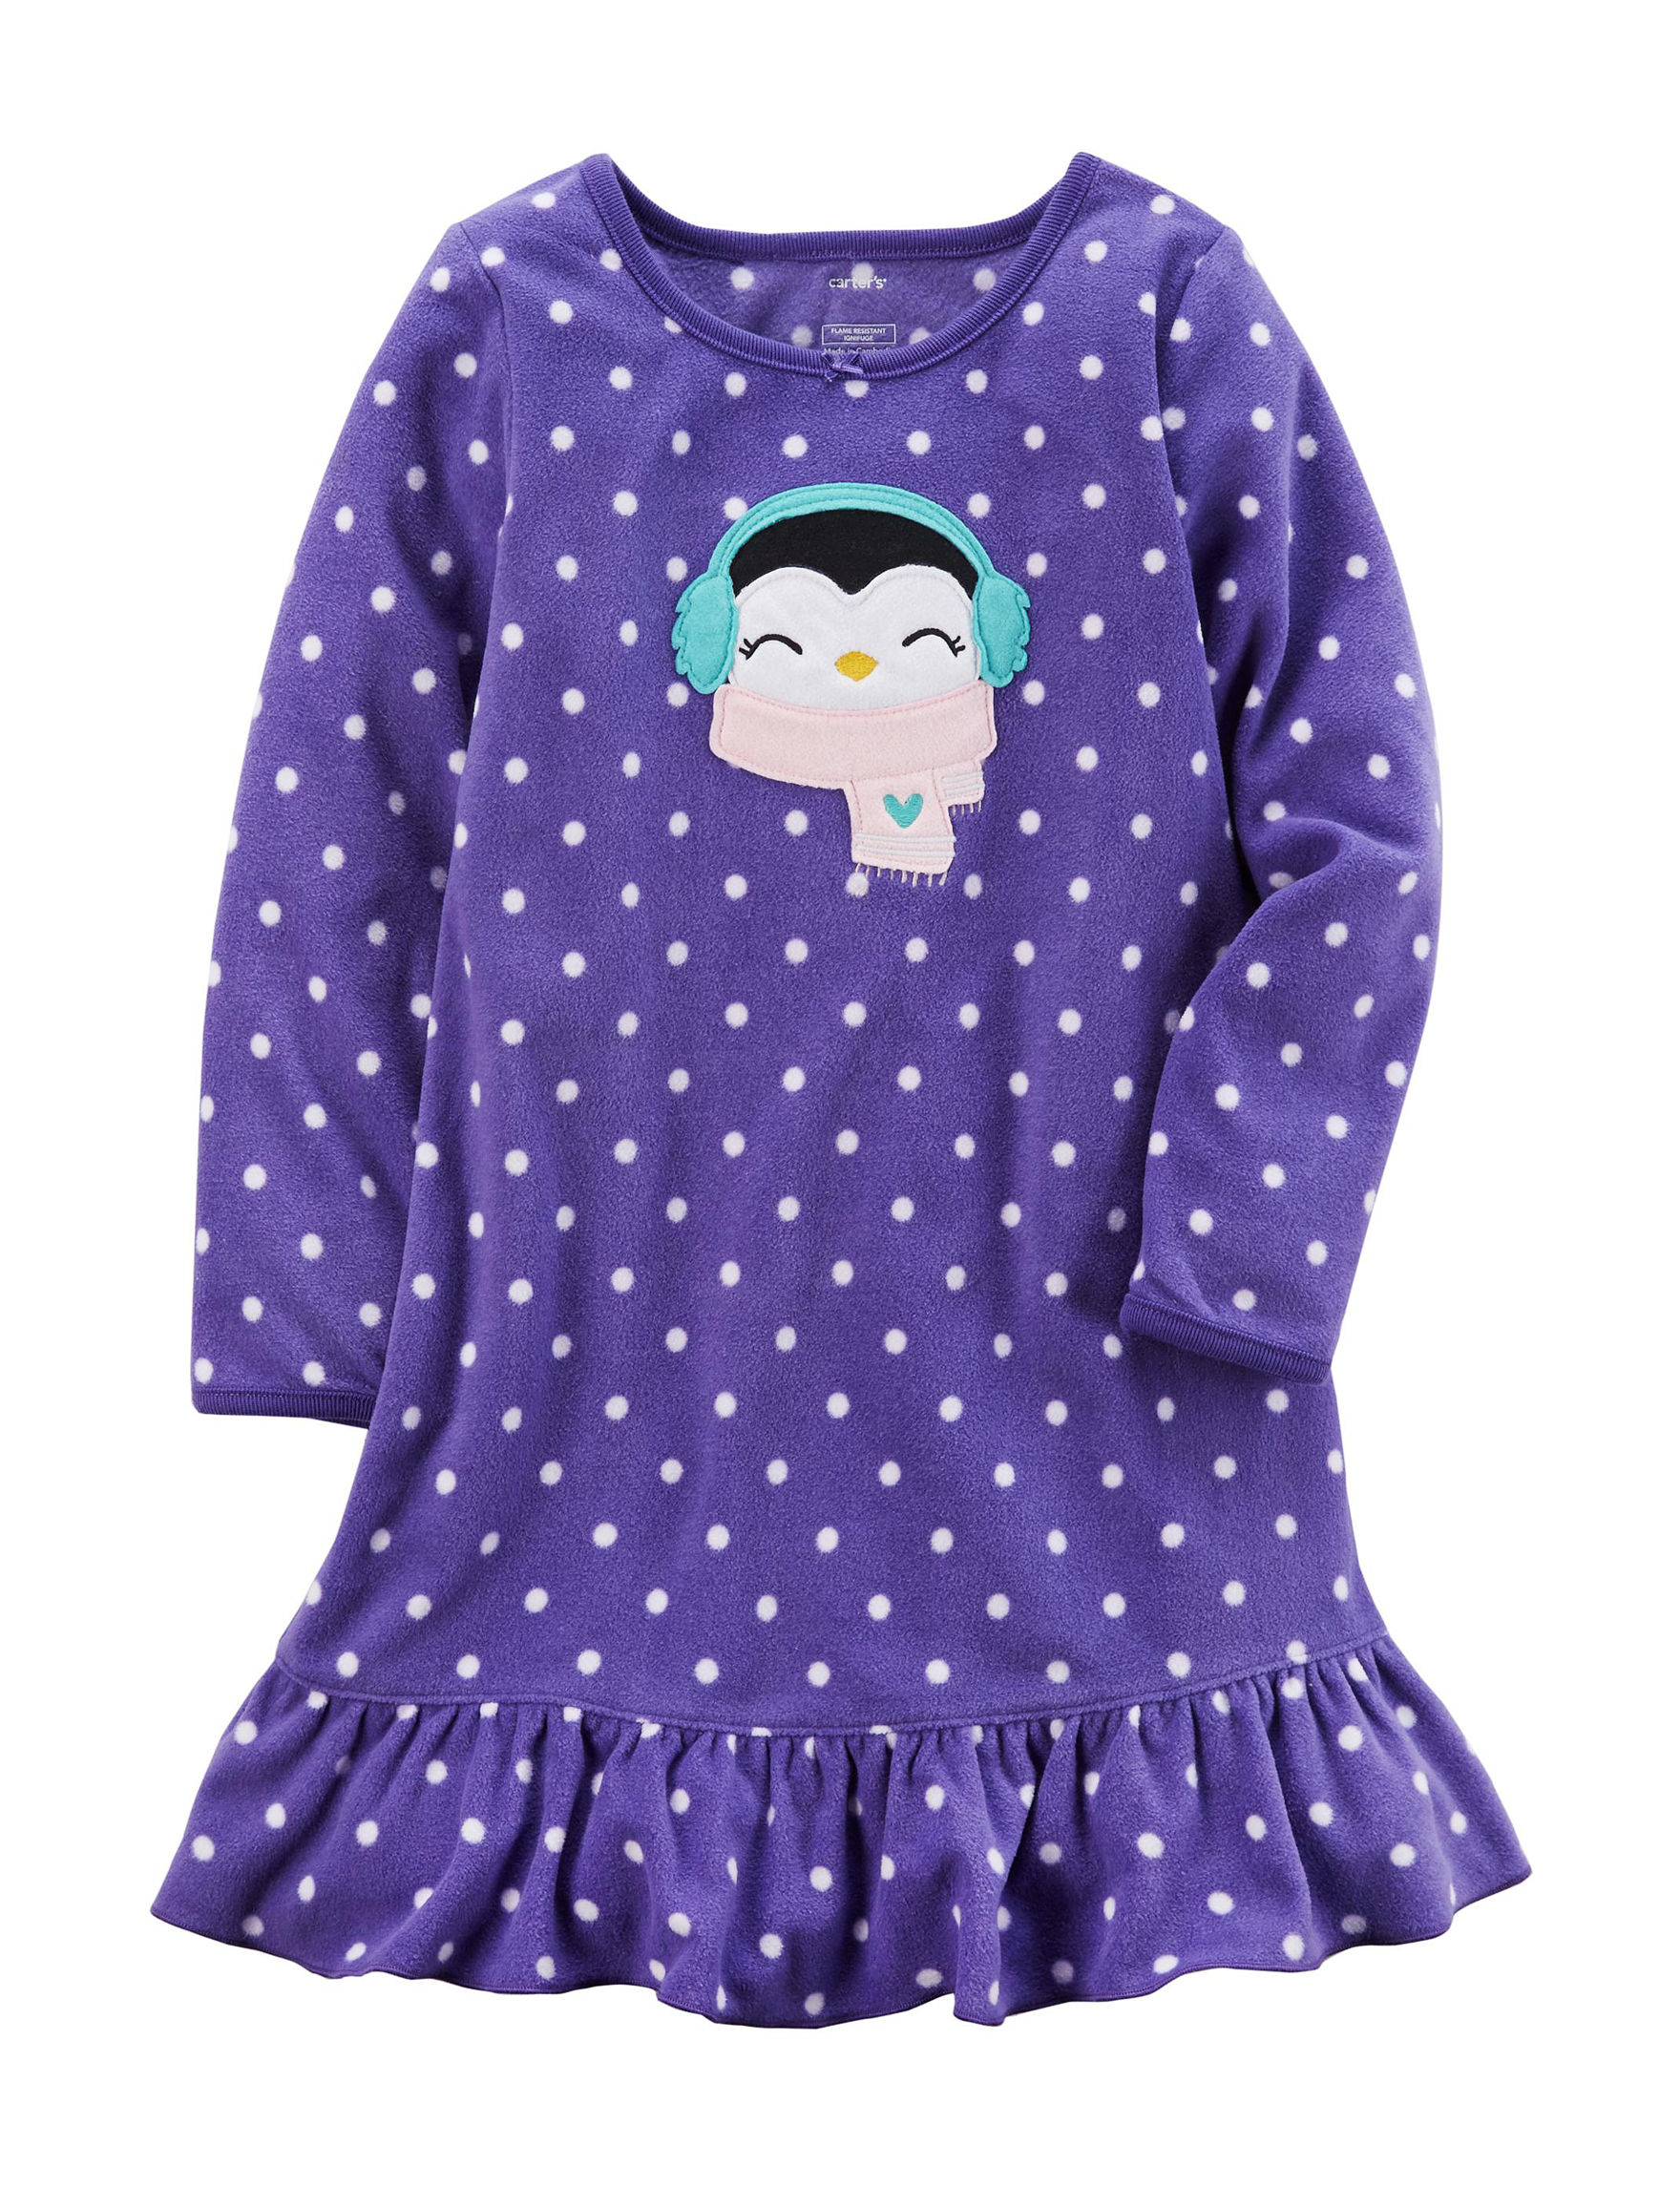 Carter's Purple Nightgowns & Sleep Shirts